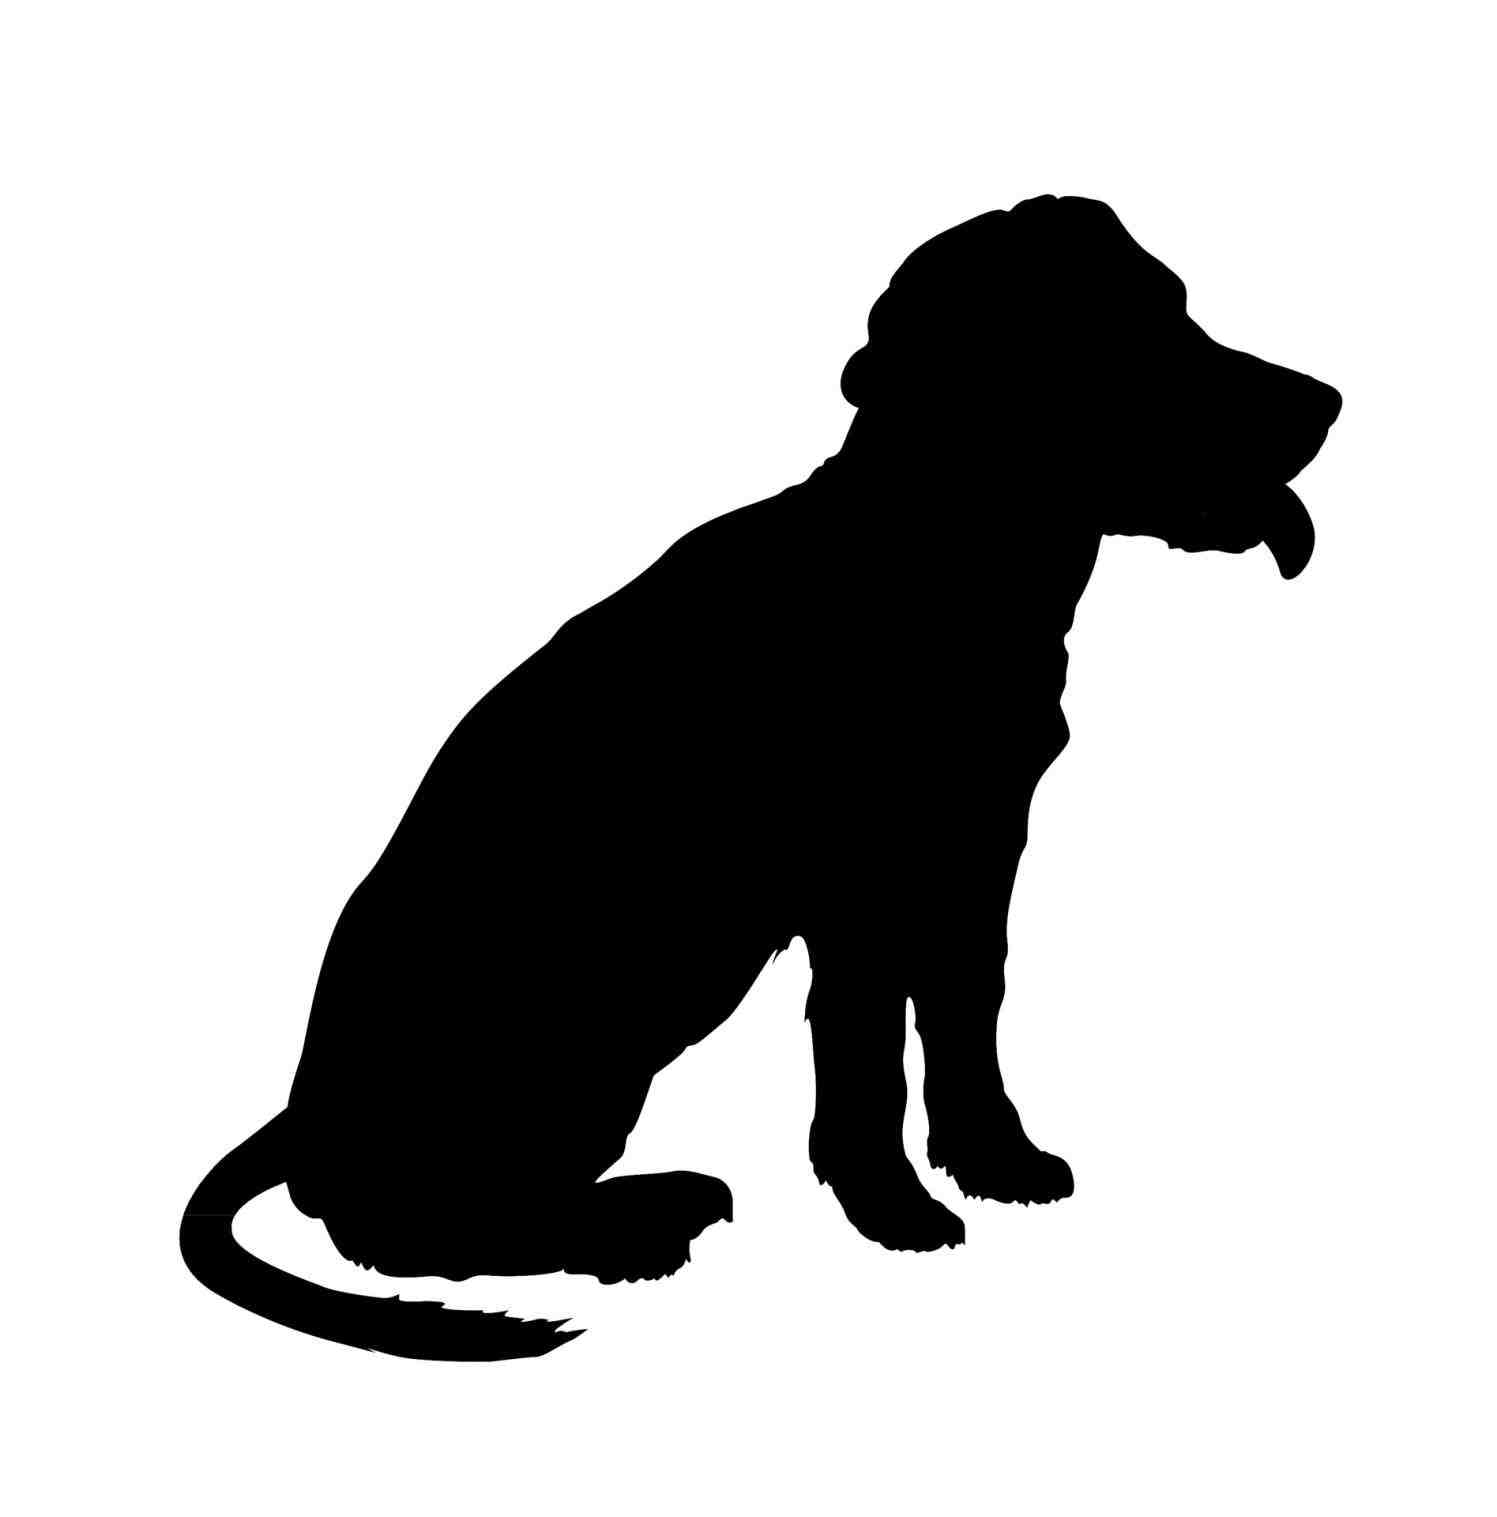 border collie silhouette clip art at getdrawings com free for rh getdrawings com  border collie clipart black and white